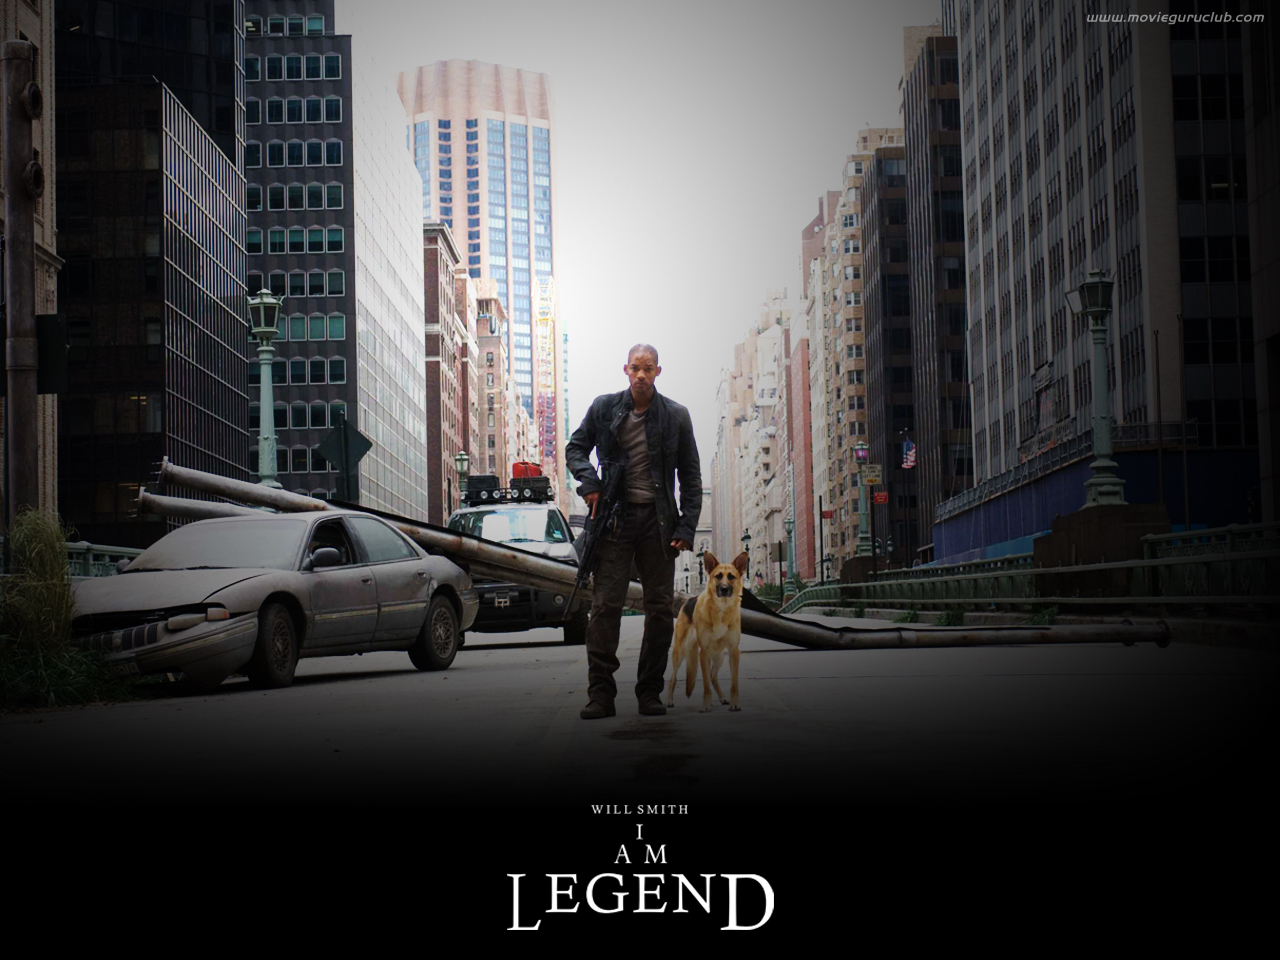 external image i am legend 002 jpg am legend wallpaper 1280x960